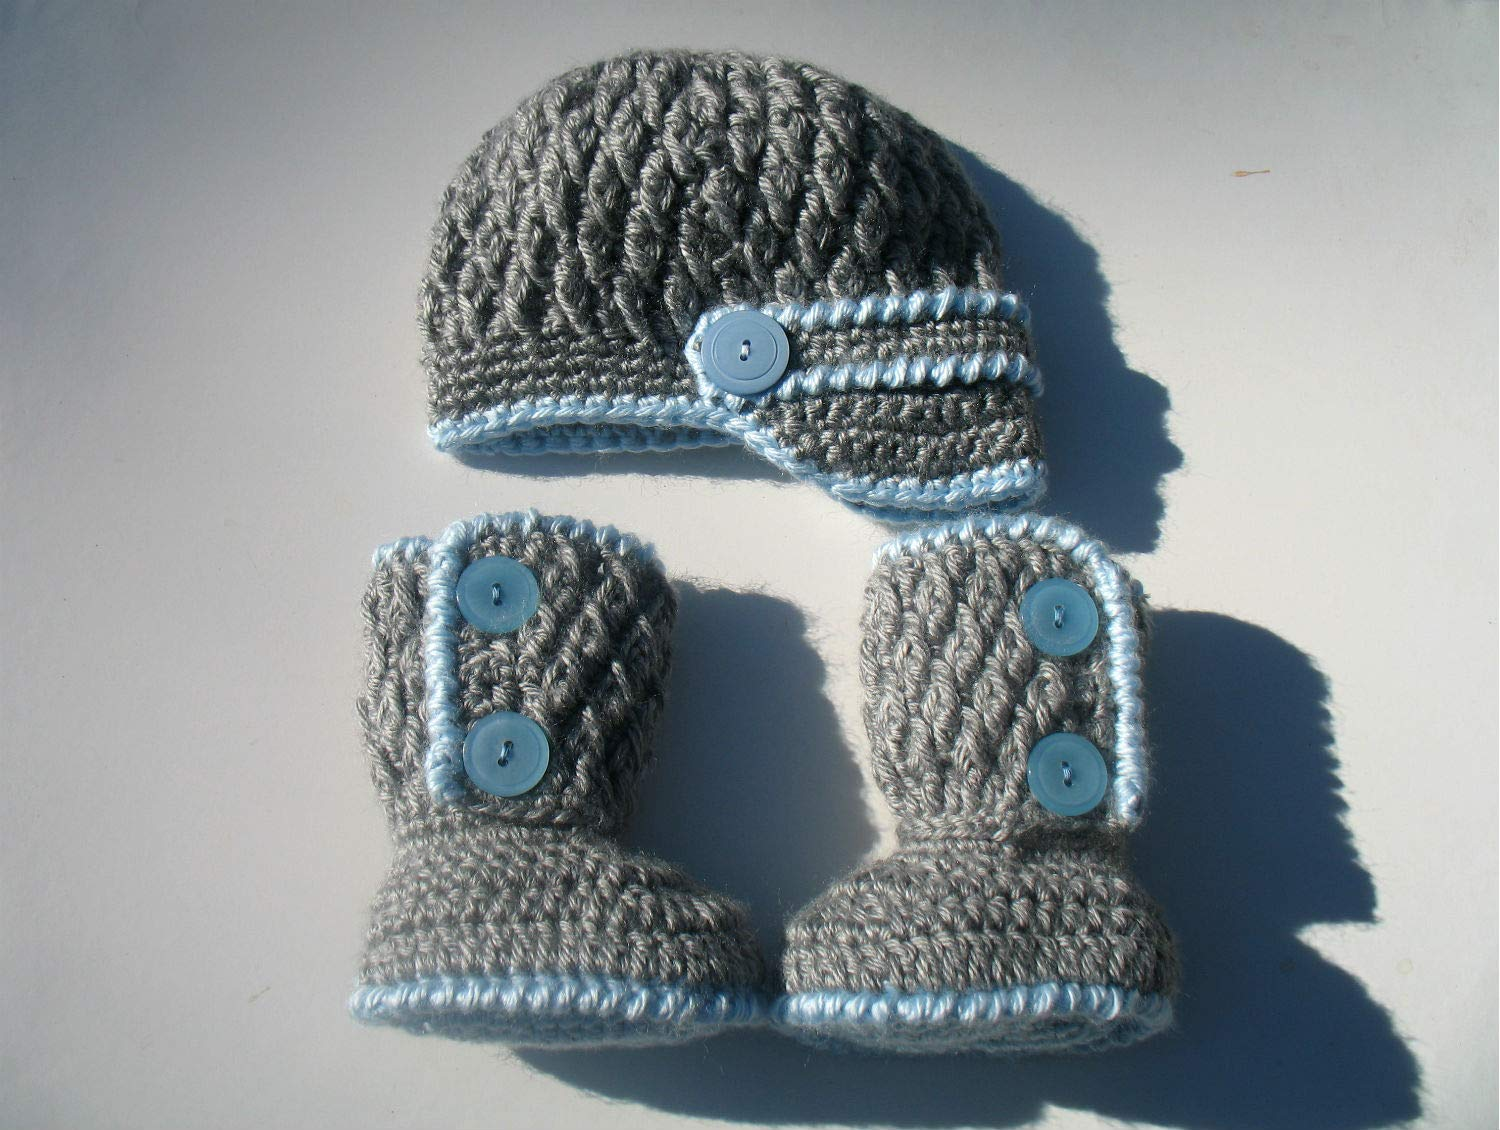 Baby Shower Gift Sweater /& Hat Set 6-12 months Handmade Hand Crocheted Set Welcome Home Baby Gift| Baby Girl